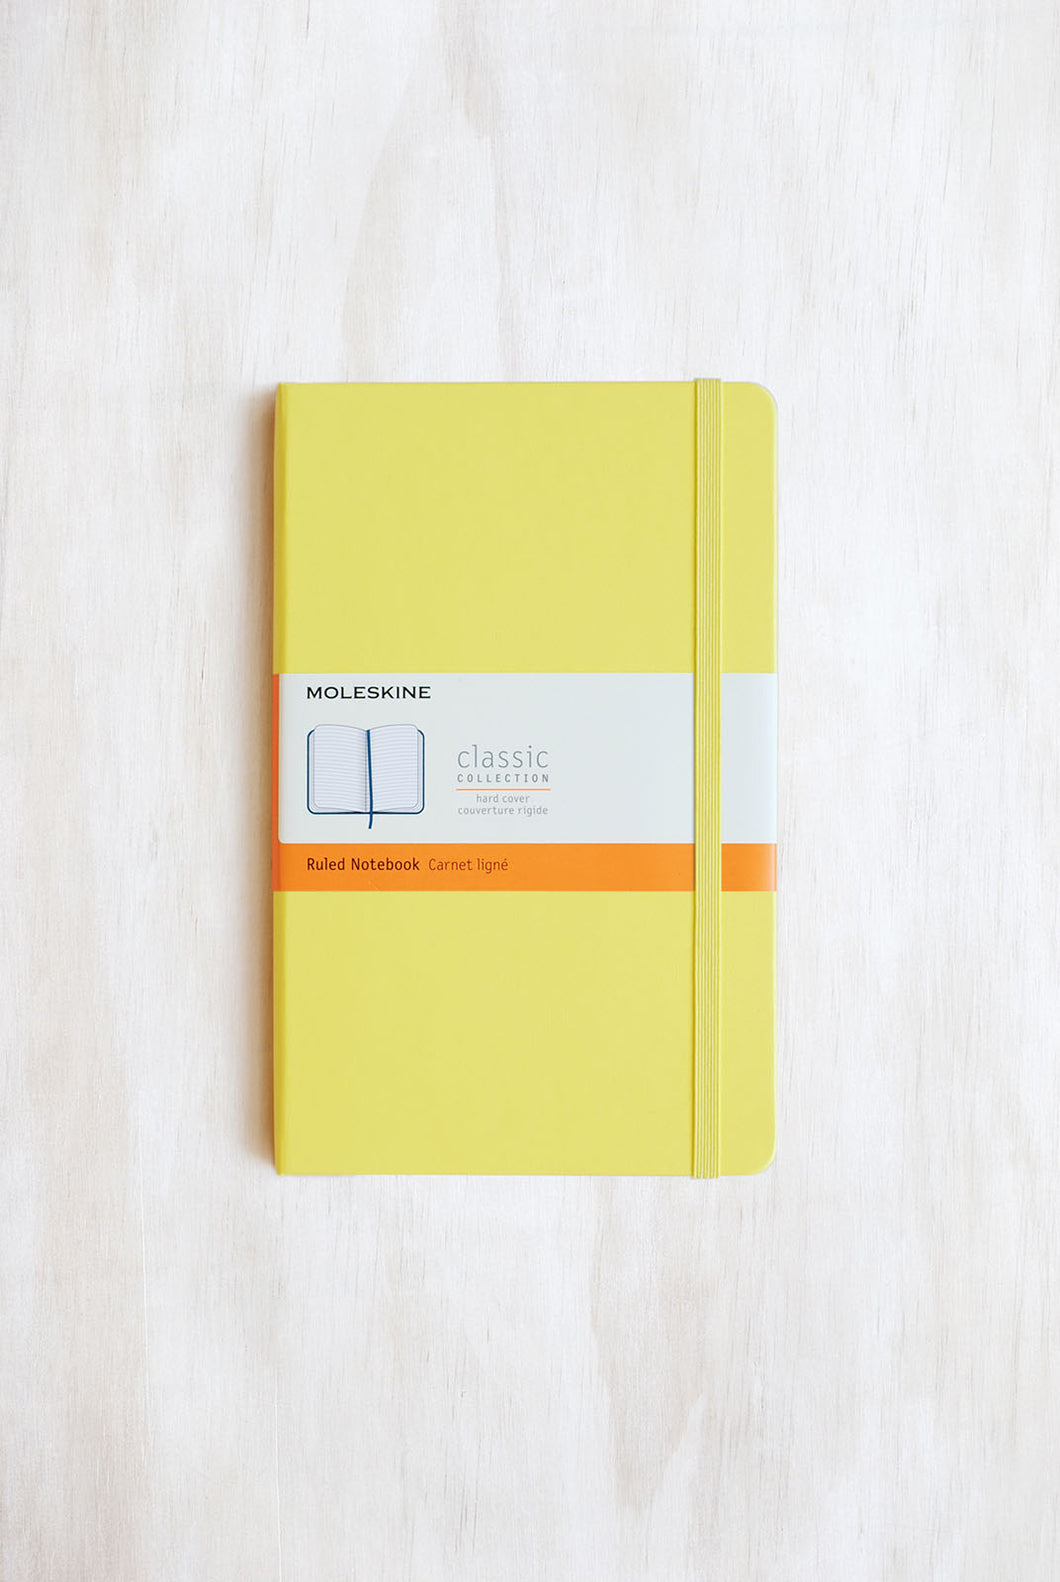 Moleskine - Classic - Hard Cover - Large (14x21cm) - Ruled Notebook - Citron Yellow